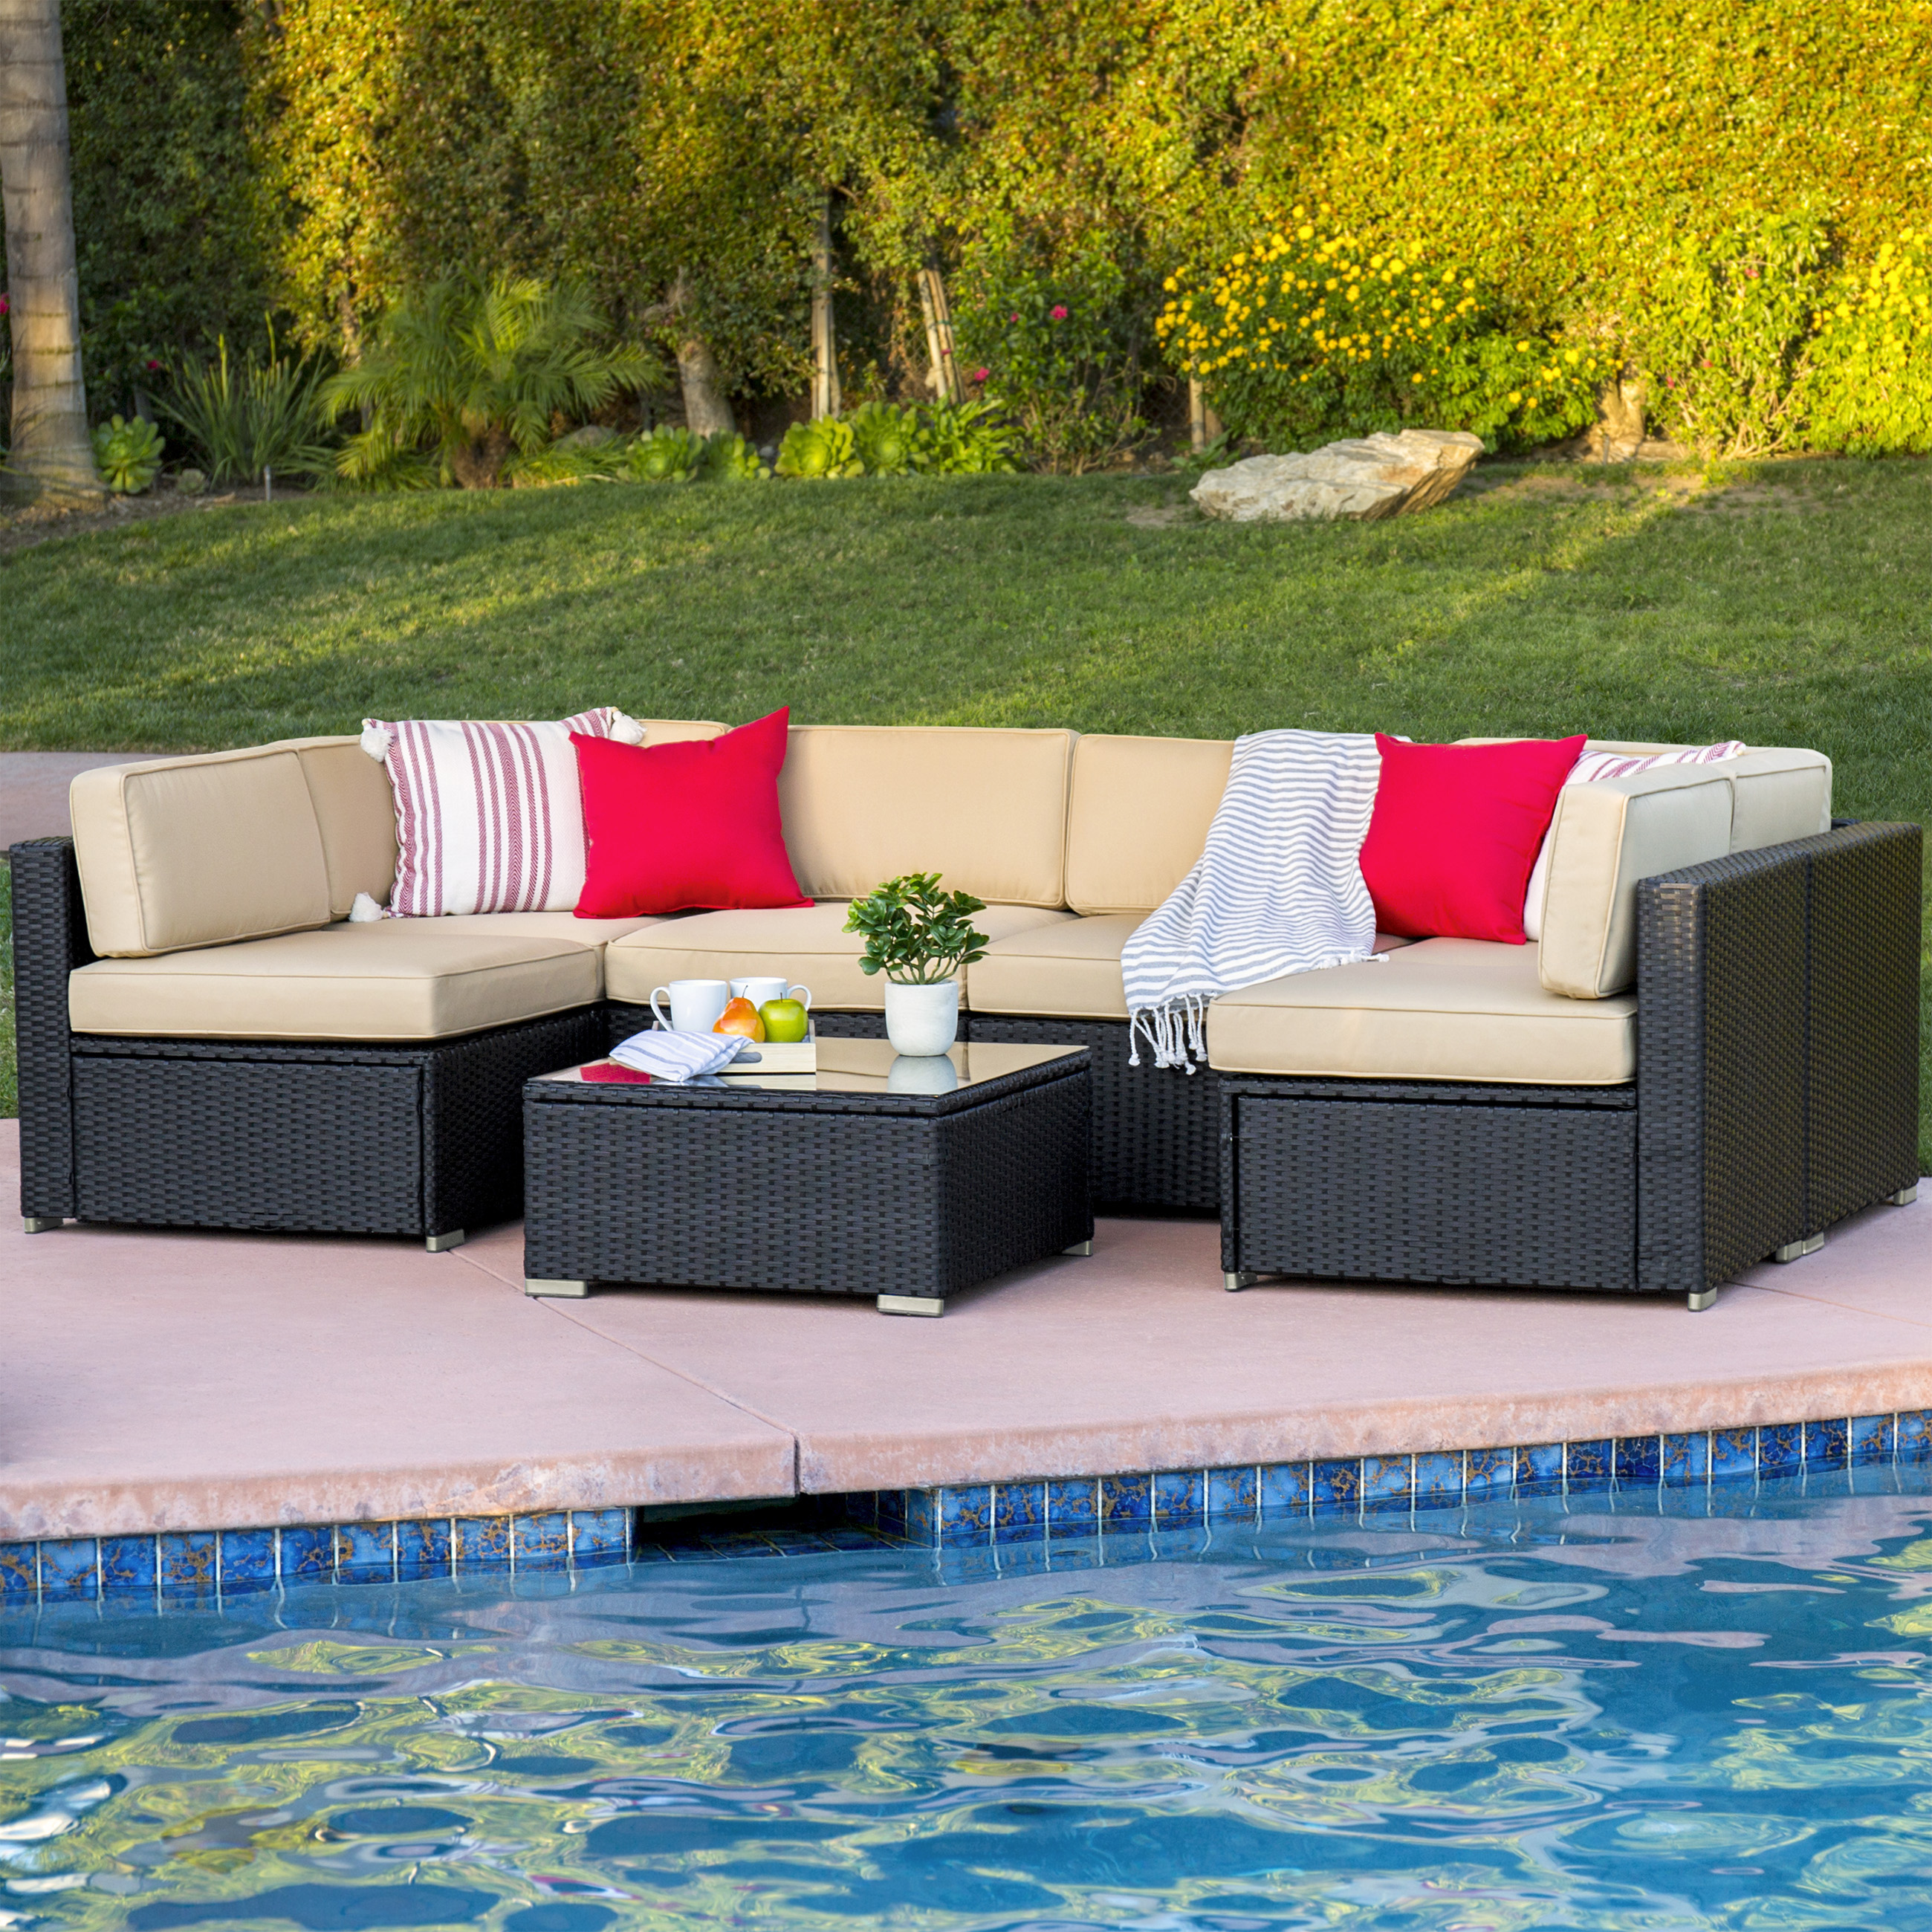 Rattan sofa outdoor  Best Choice Products 7pc Outdoor Patio Garden Wicker Furniture ...